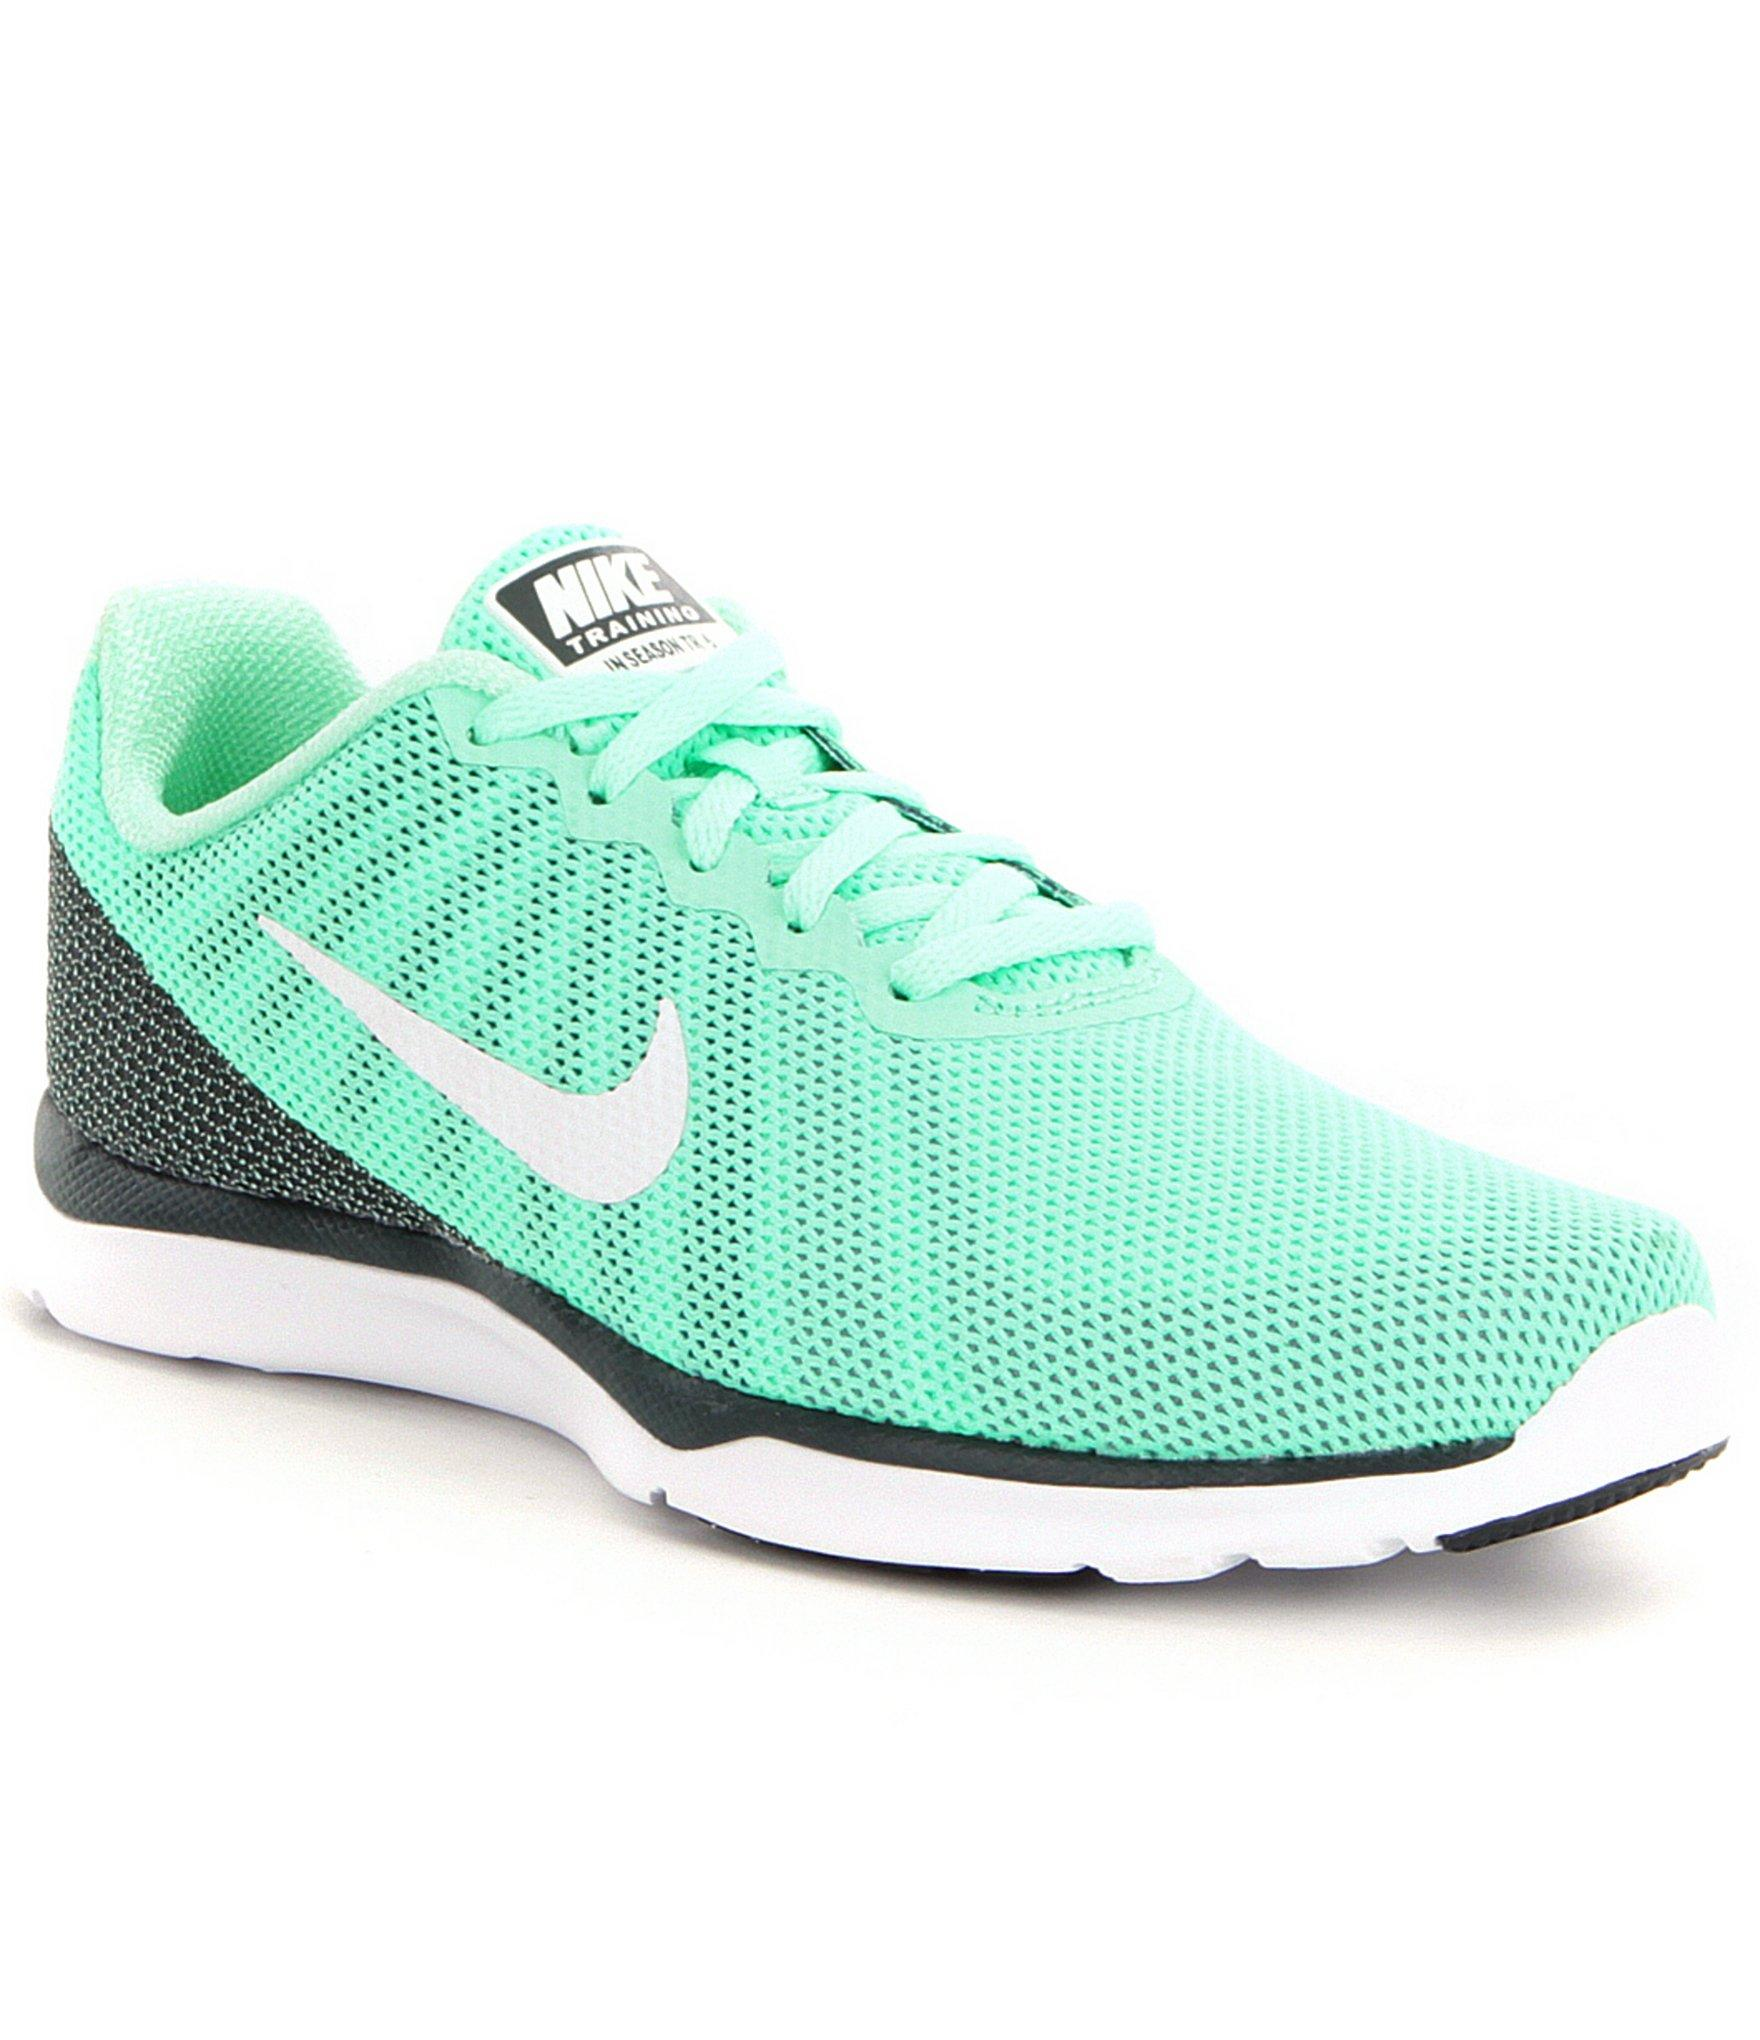 ea4783aba0a2c Nike Women ́s In-season Tr 6 Training Shoes in Green - Lyst